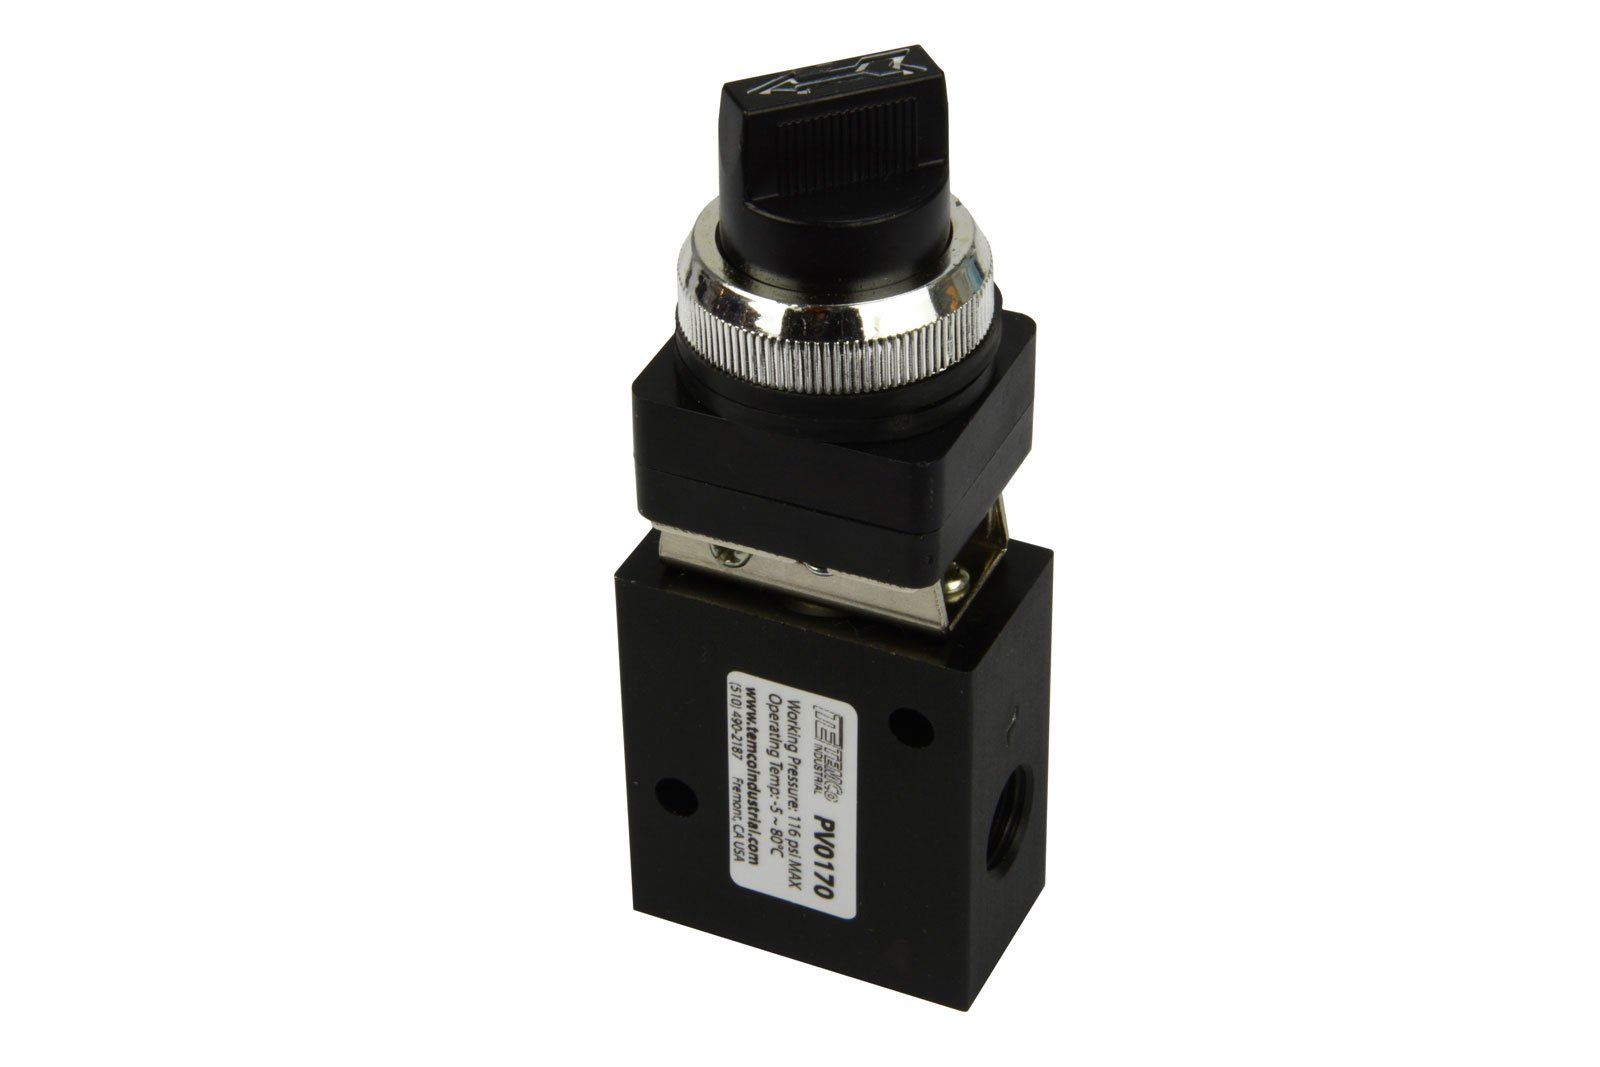 Latching Rotary Knob Normally Closed Pneumatic Air Control Valve 3 Port 3 Way 2 Position 1/4'' NPT